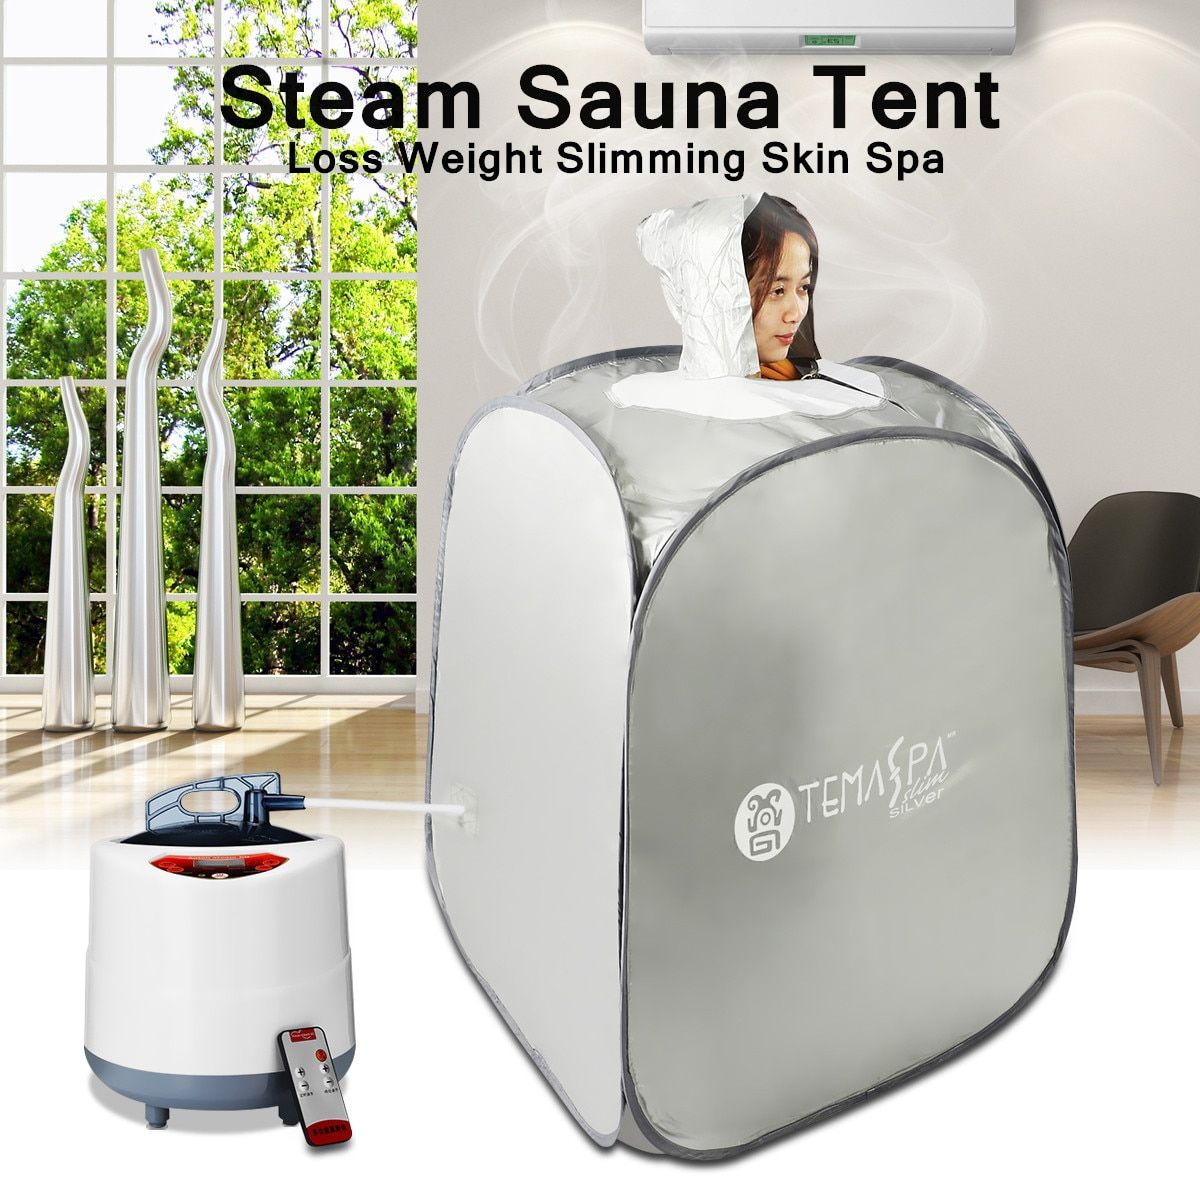 2L Portable Indoor Foldable 220V 60Hz 1000W AU Plug Steam Sauna Room Tent Loss Weight Slimming Skin Spa For Personal Health Care